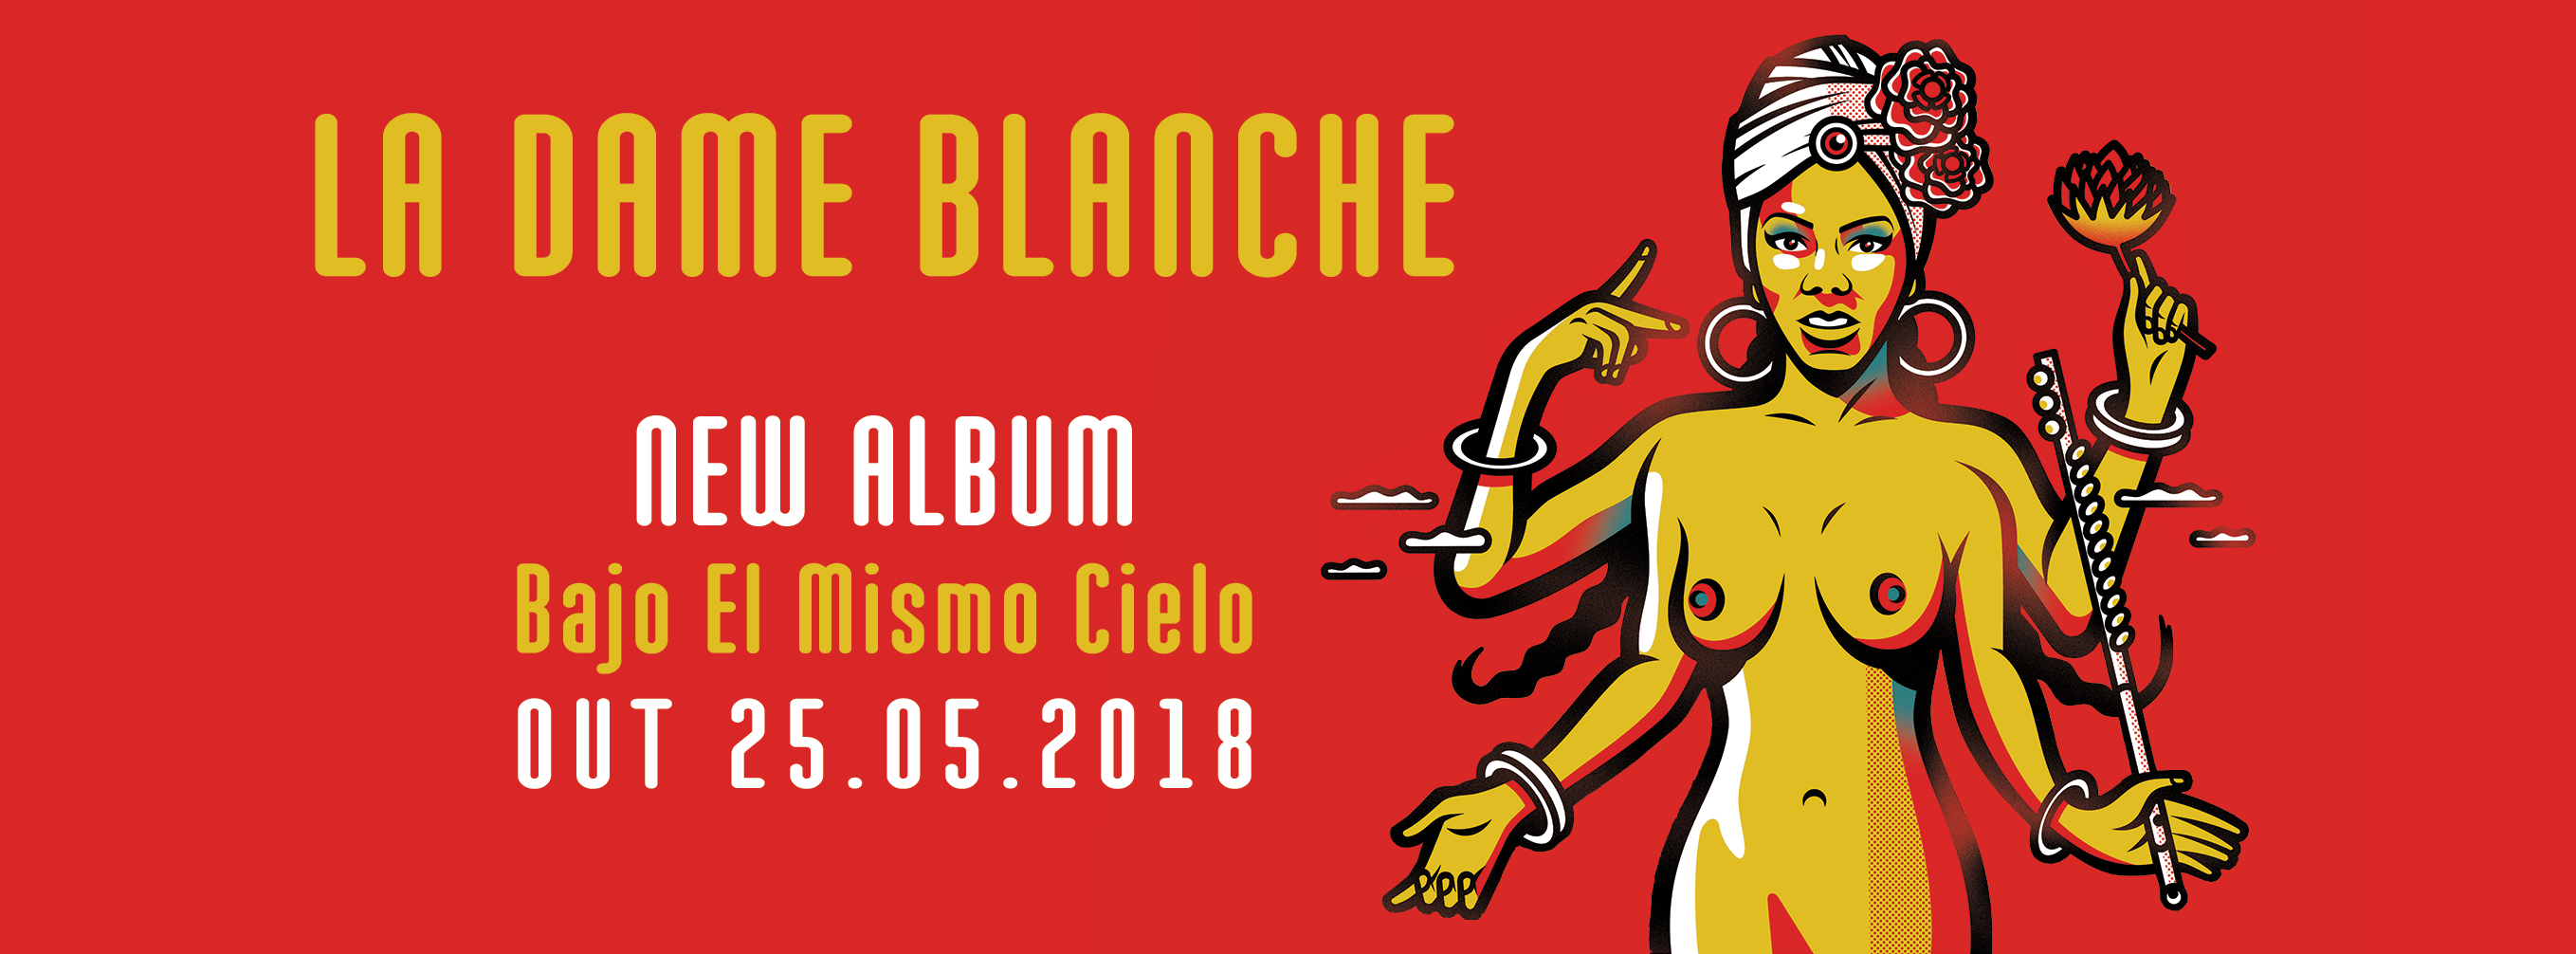 La Dame Blanche album artwork